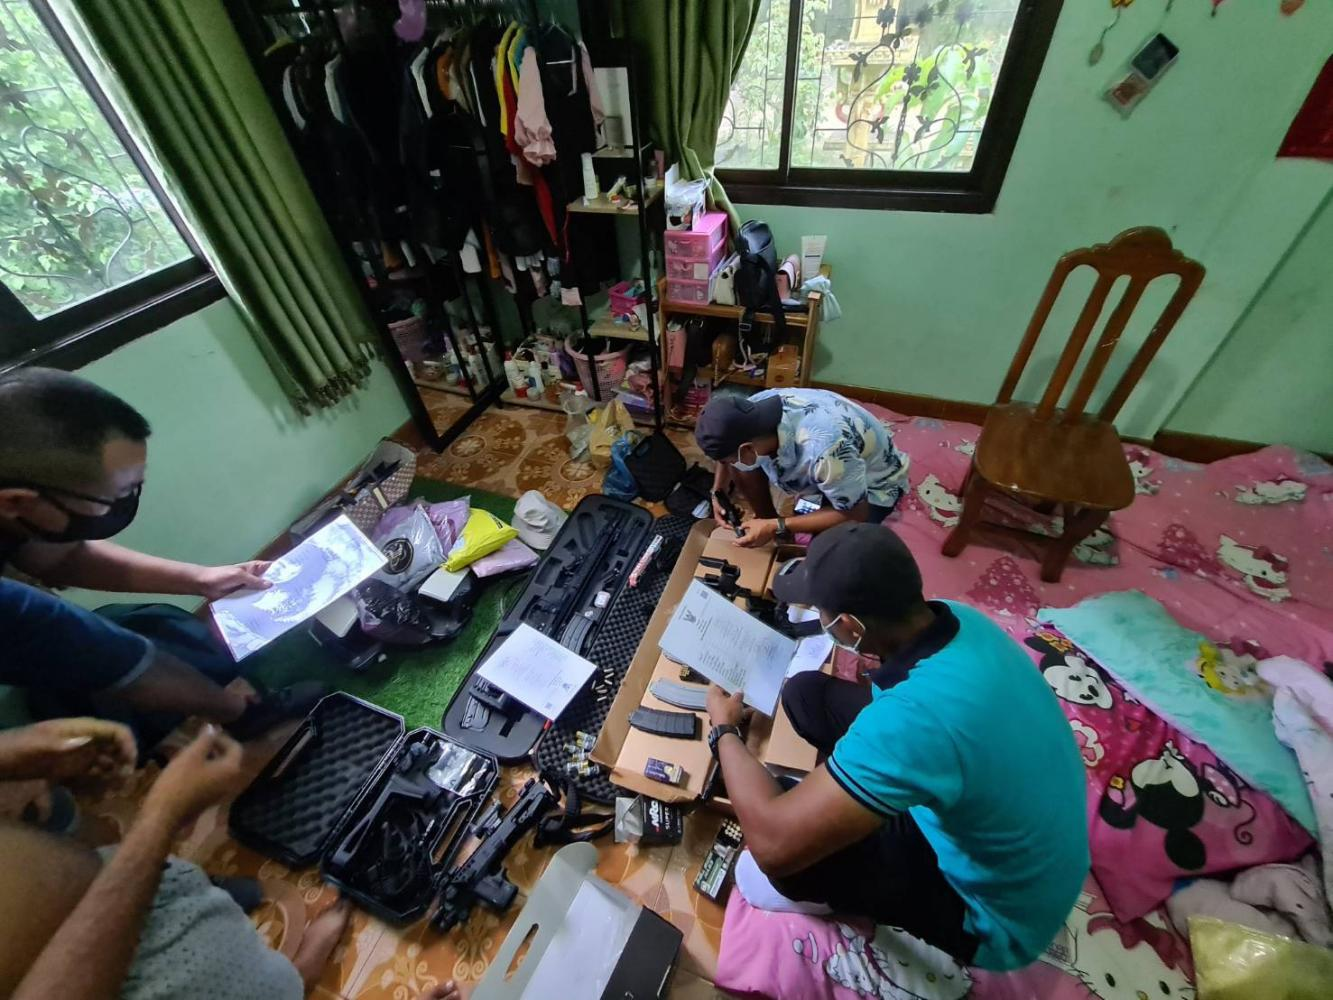 Plainclothes police search a house in Nakhon Si Thammarat where they found several firearms. The officers examined gun possession documents held by the owner. photos by the CSD